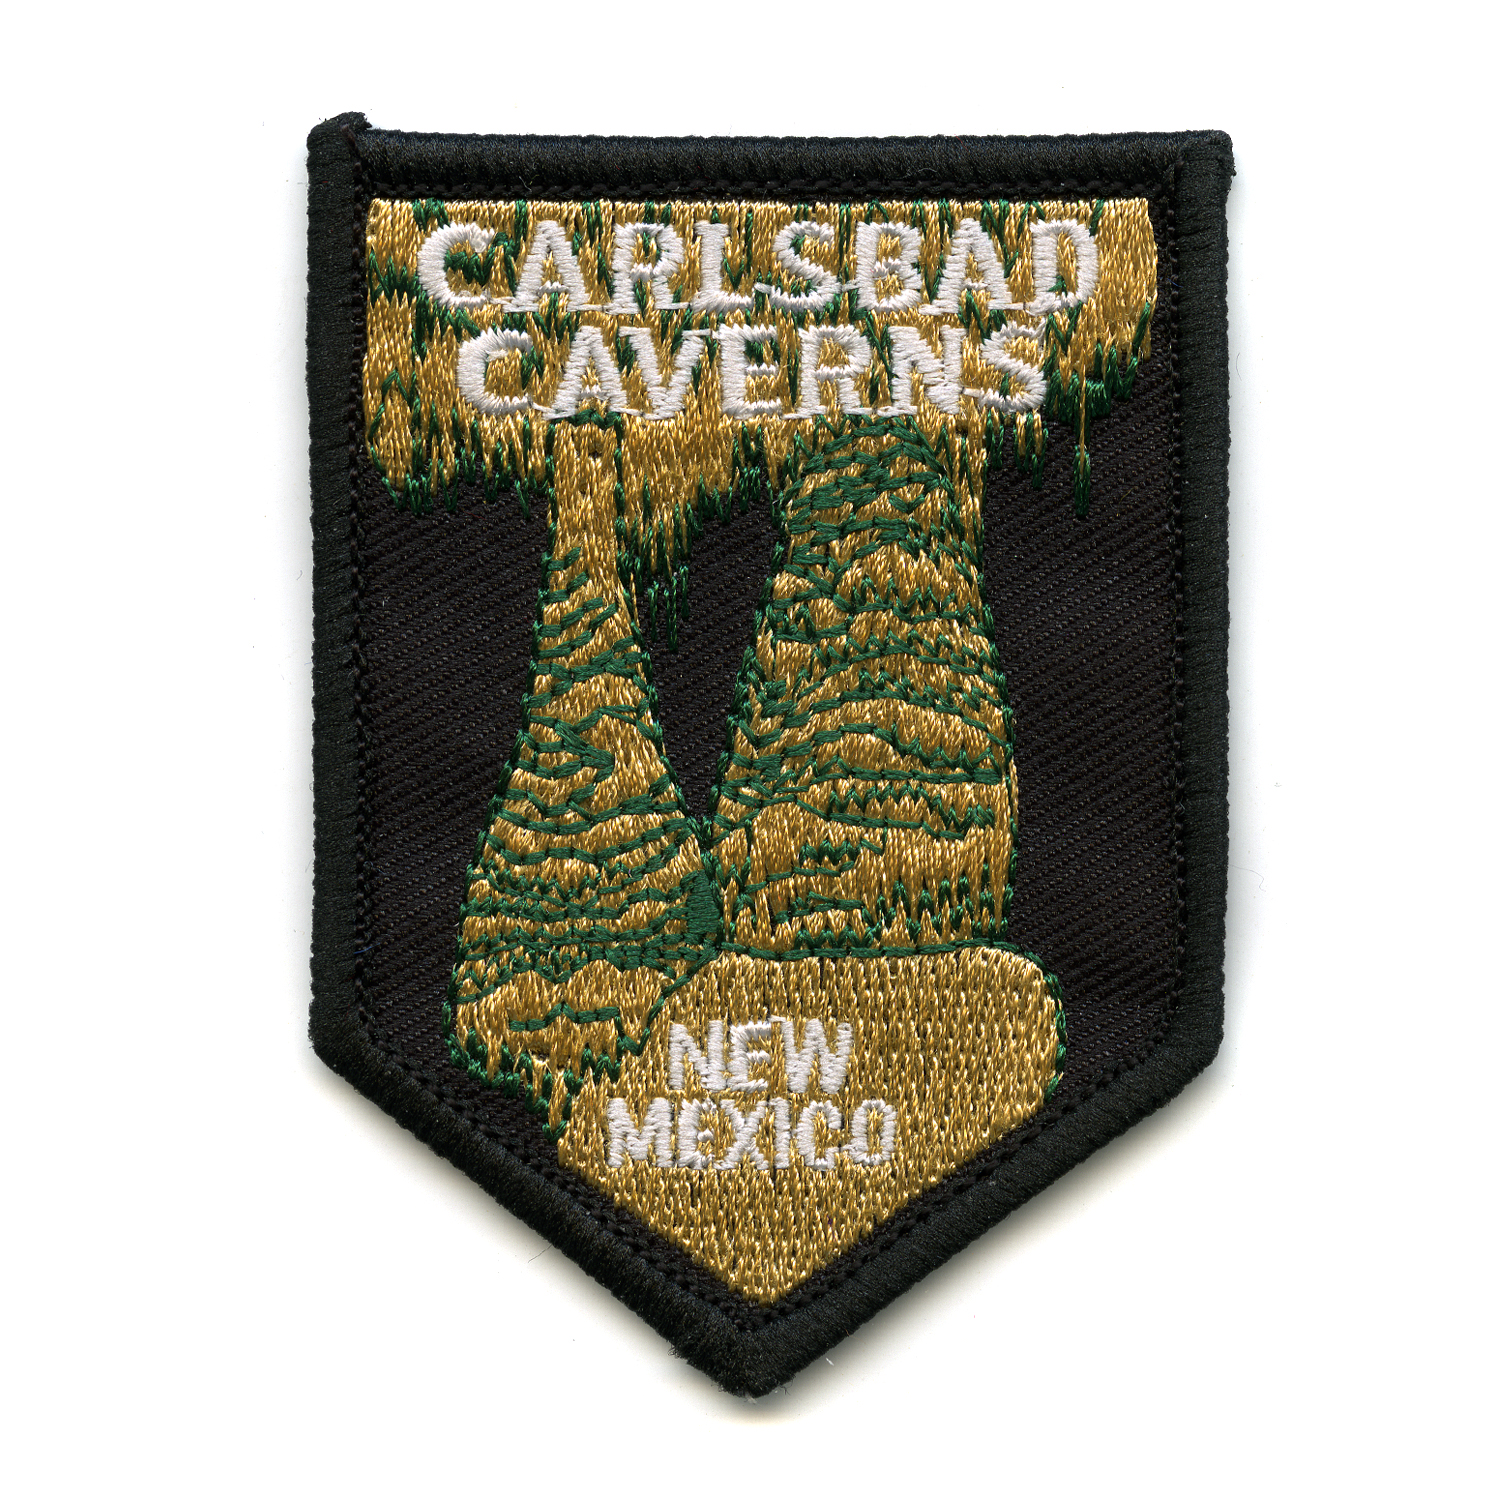 nps_patch_project_carlsbad_caverns_national_park_patch_2.jpg